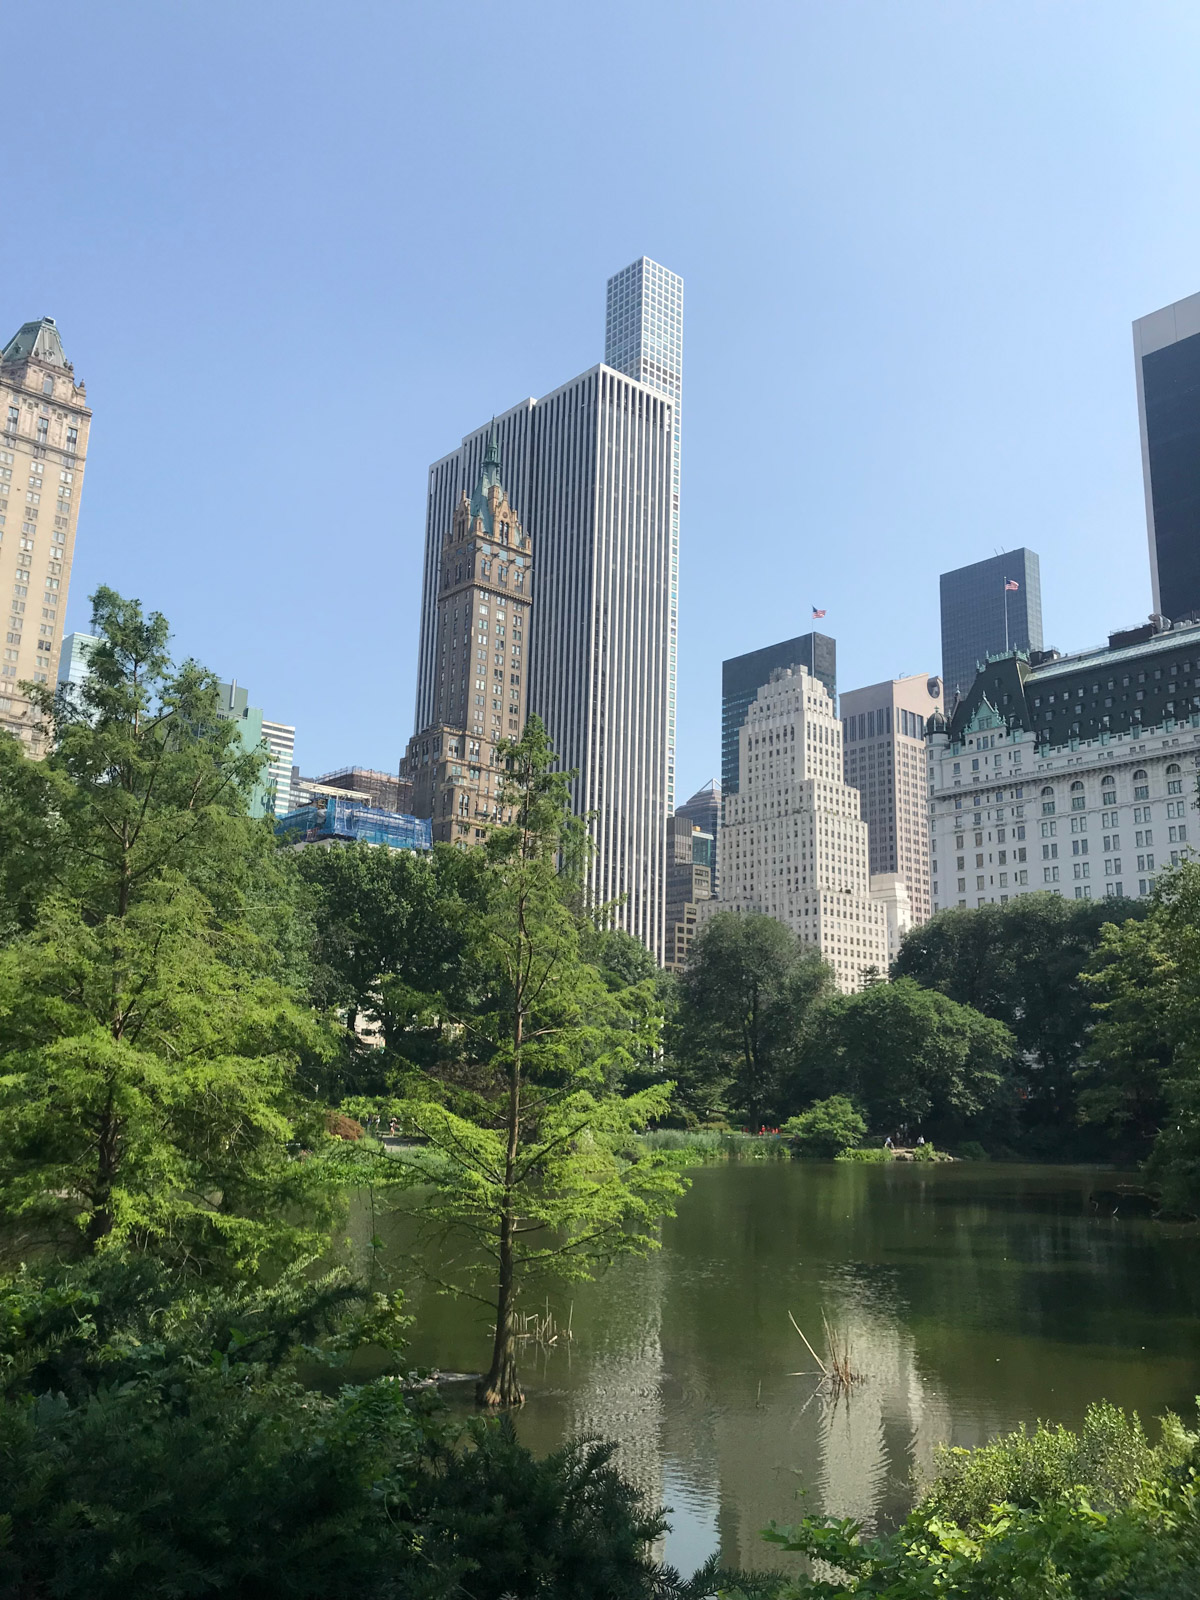 A portrait style photo, same view as the previous photo, taken from inside a park, with many trees and a pond in the foreground, and the city in the background